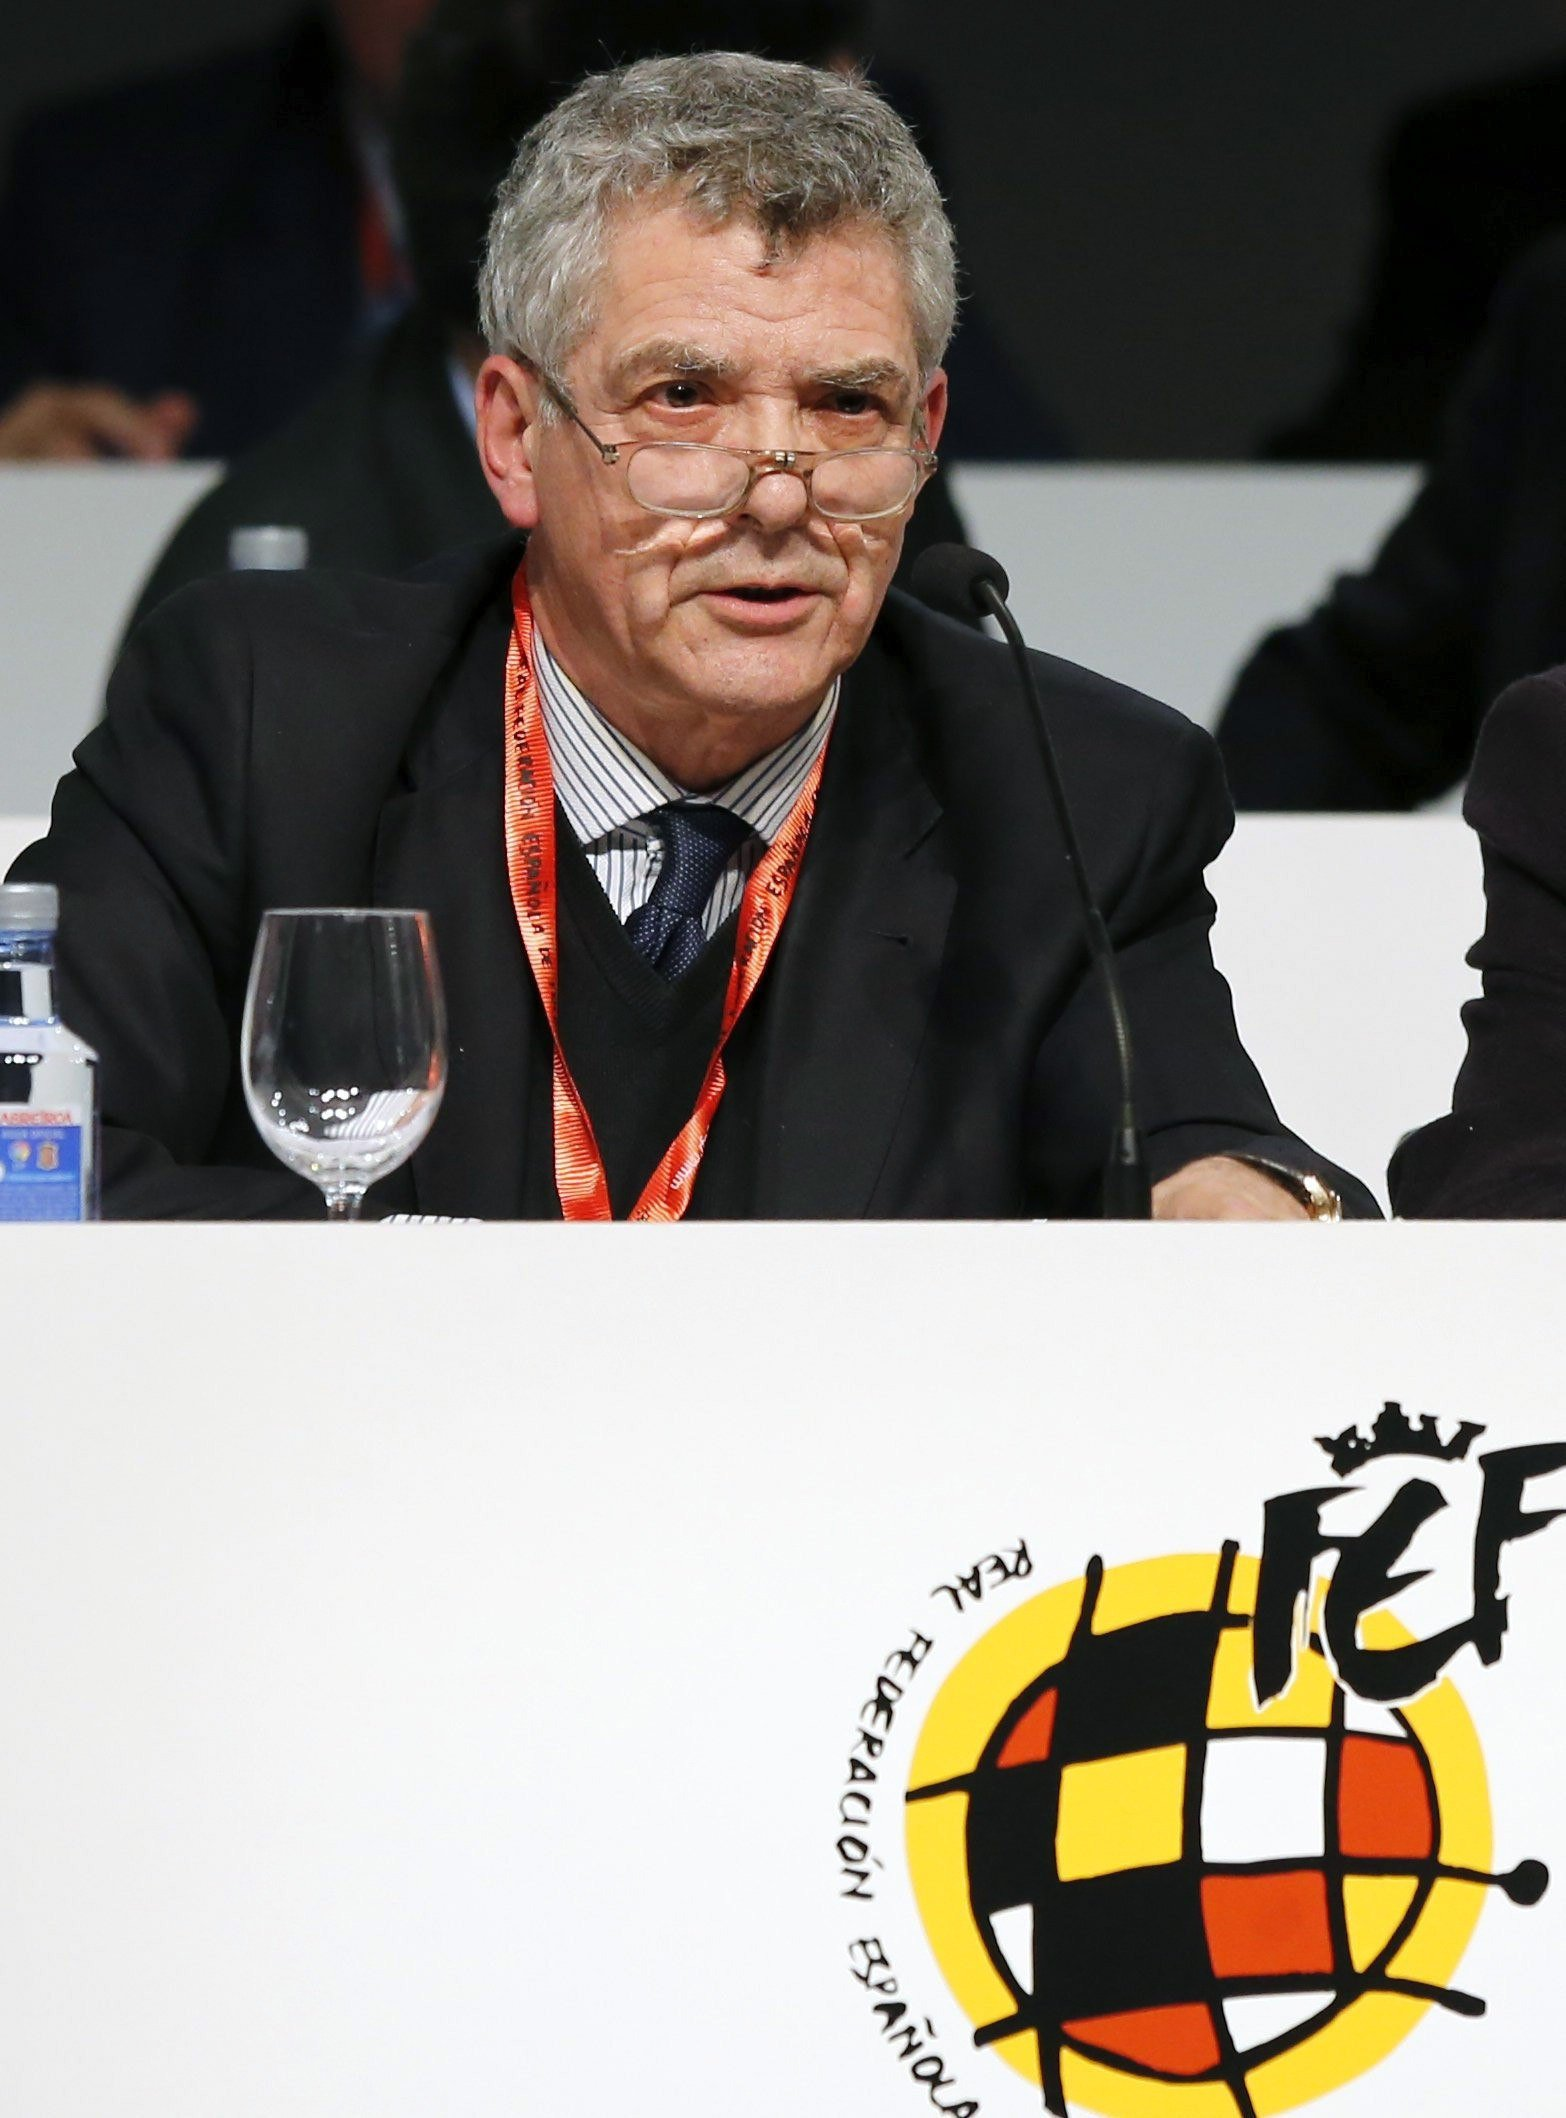 FIFA threatens Spain with being left out of the World Cup over Villar corruption scandal